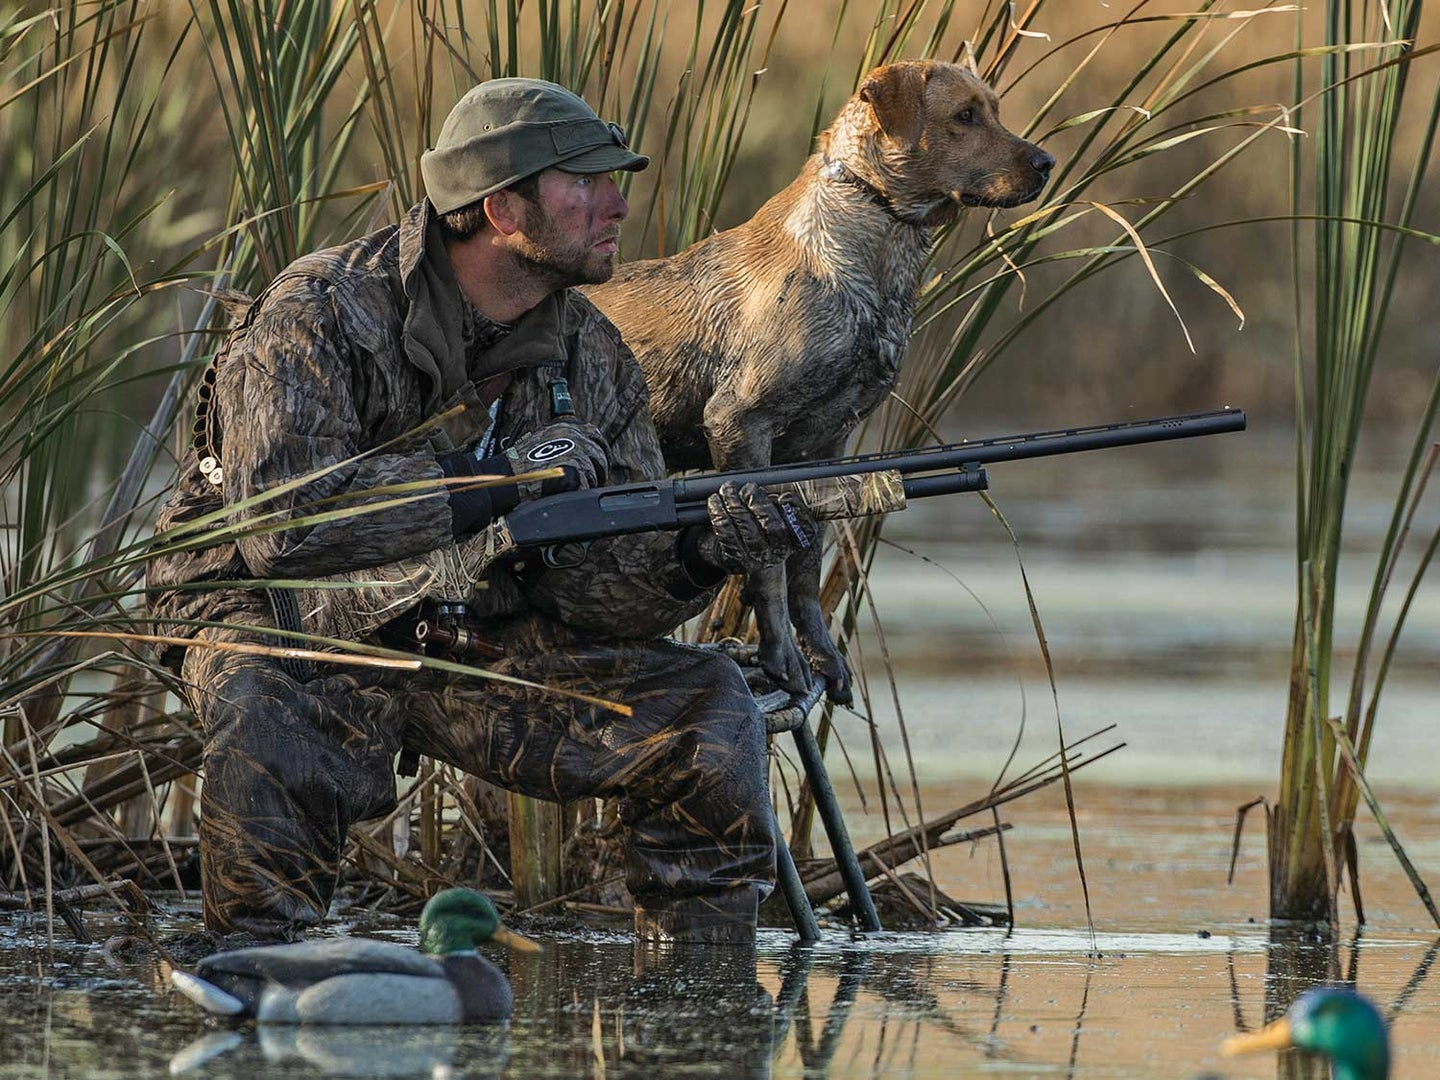 A hunter and a hunting dog duck hunting by a pond.